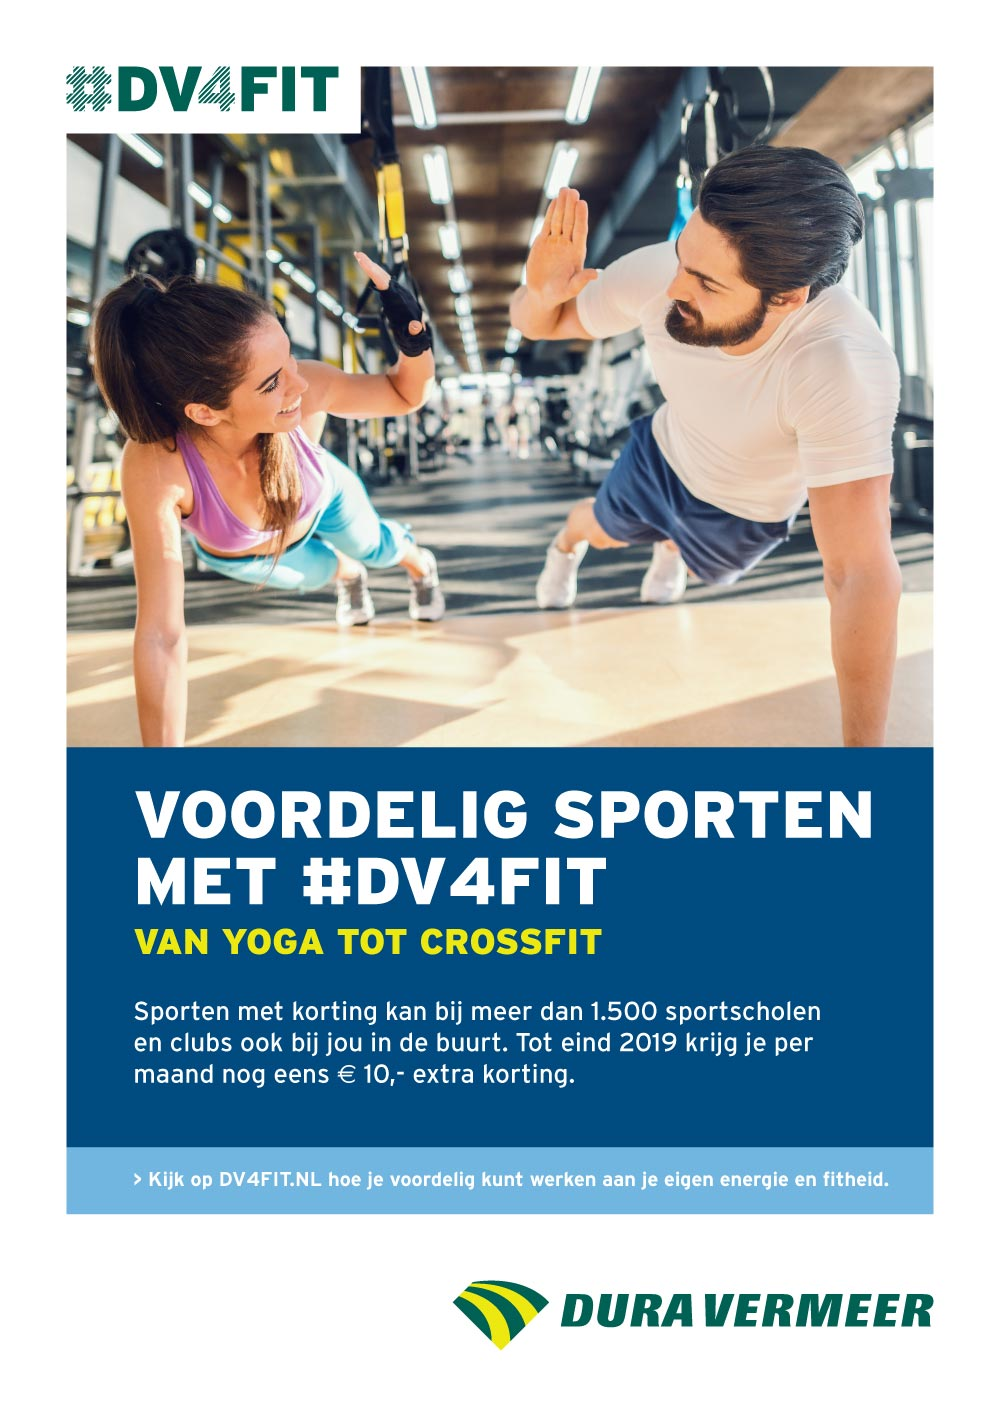 Ontwerp poster #DV4FIT